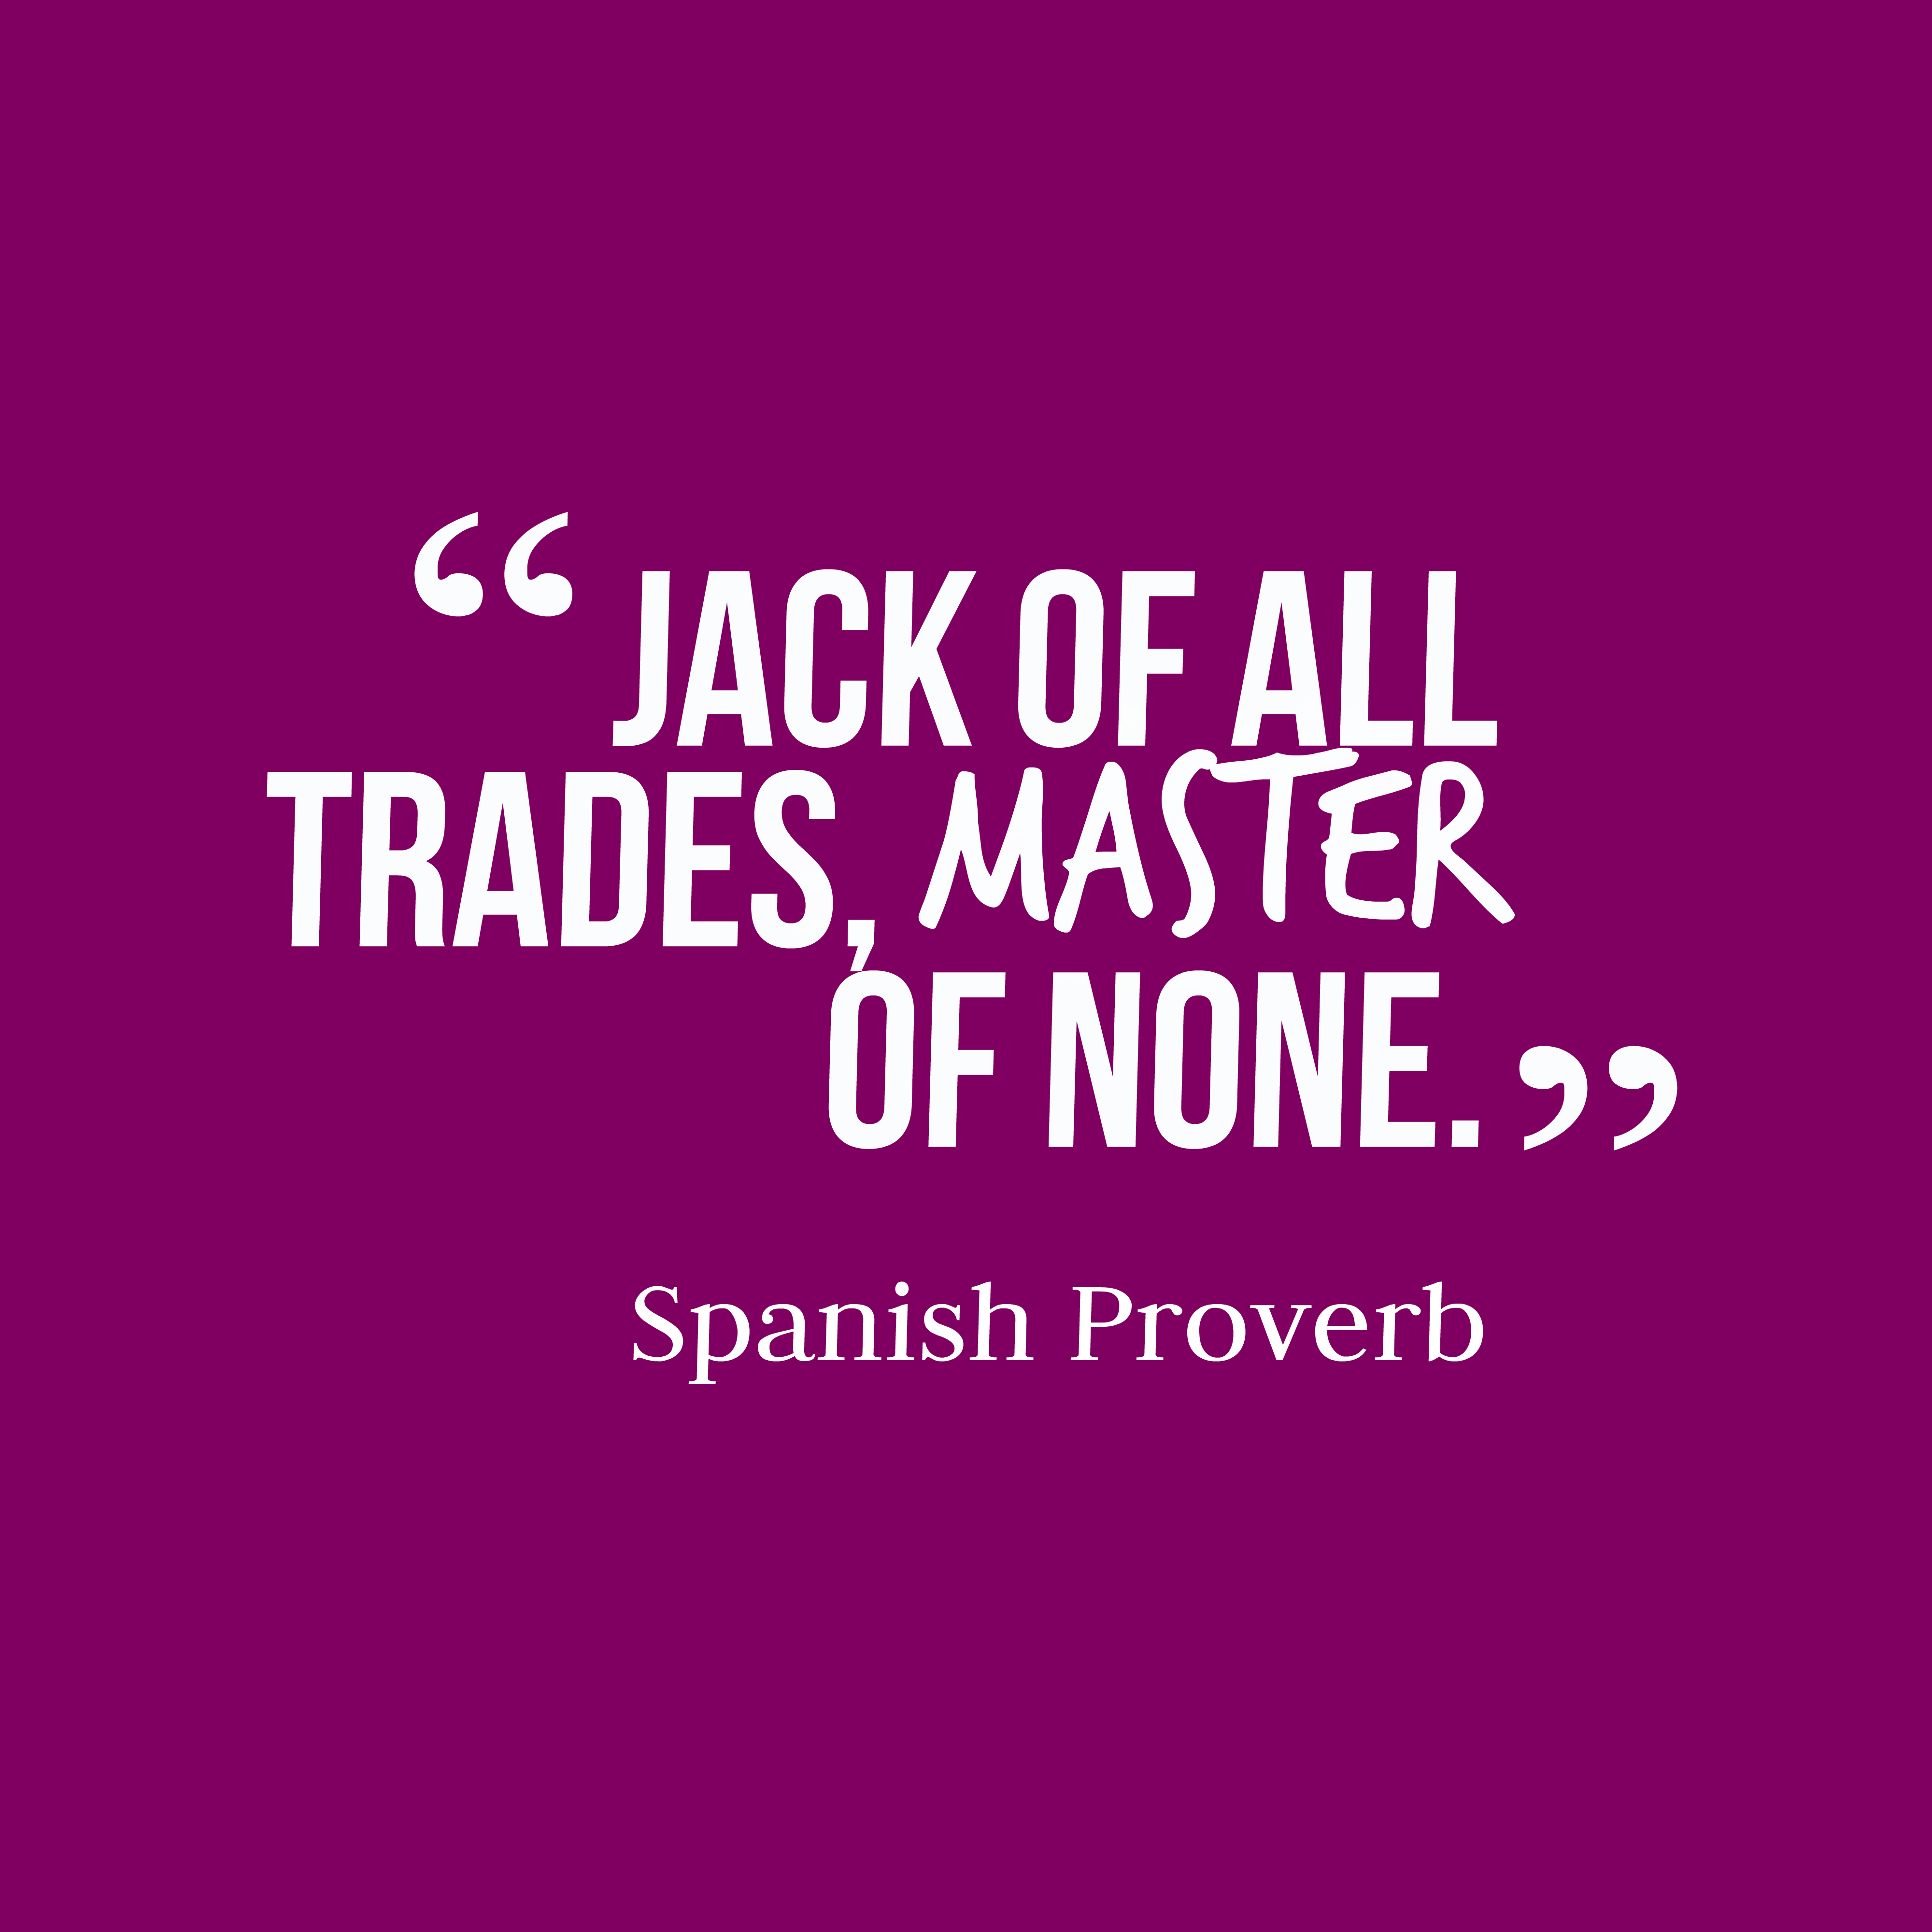 Quotes image of Jack of all trades, master of none.